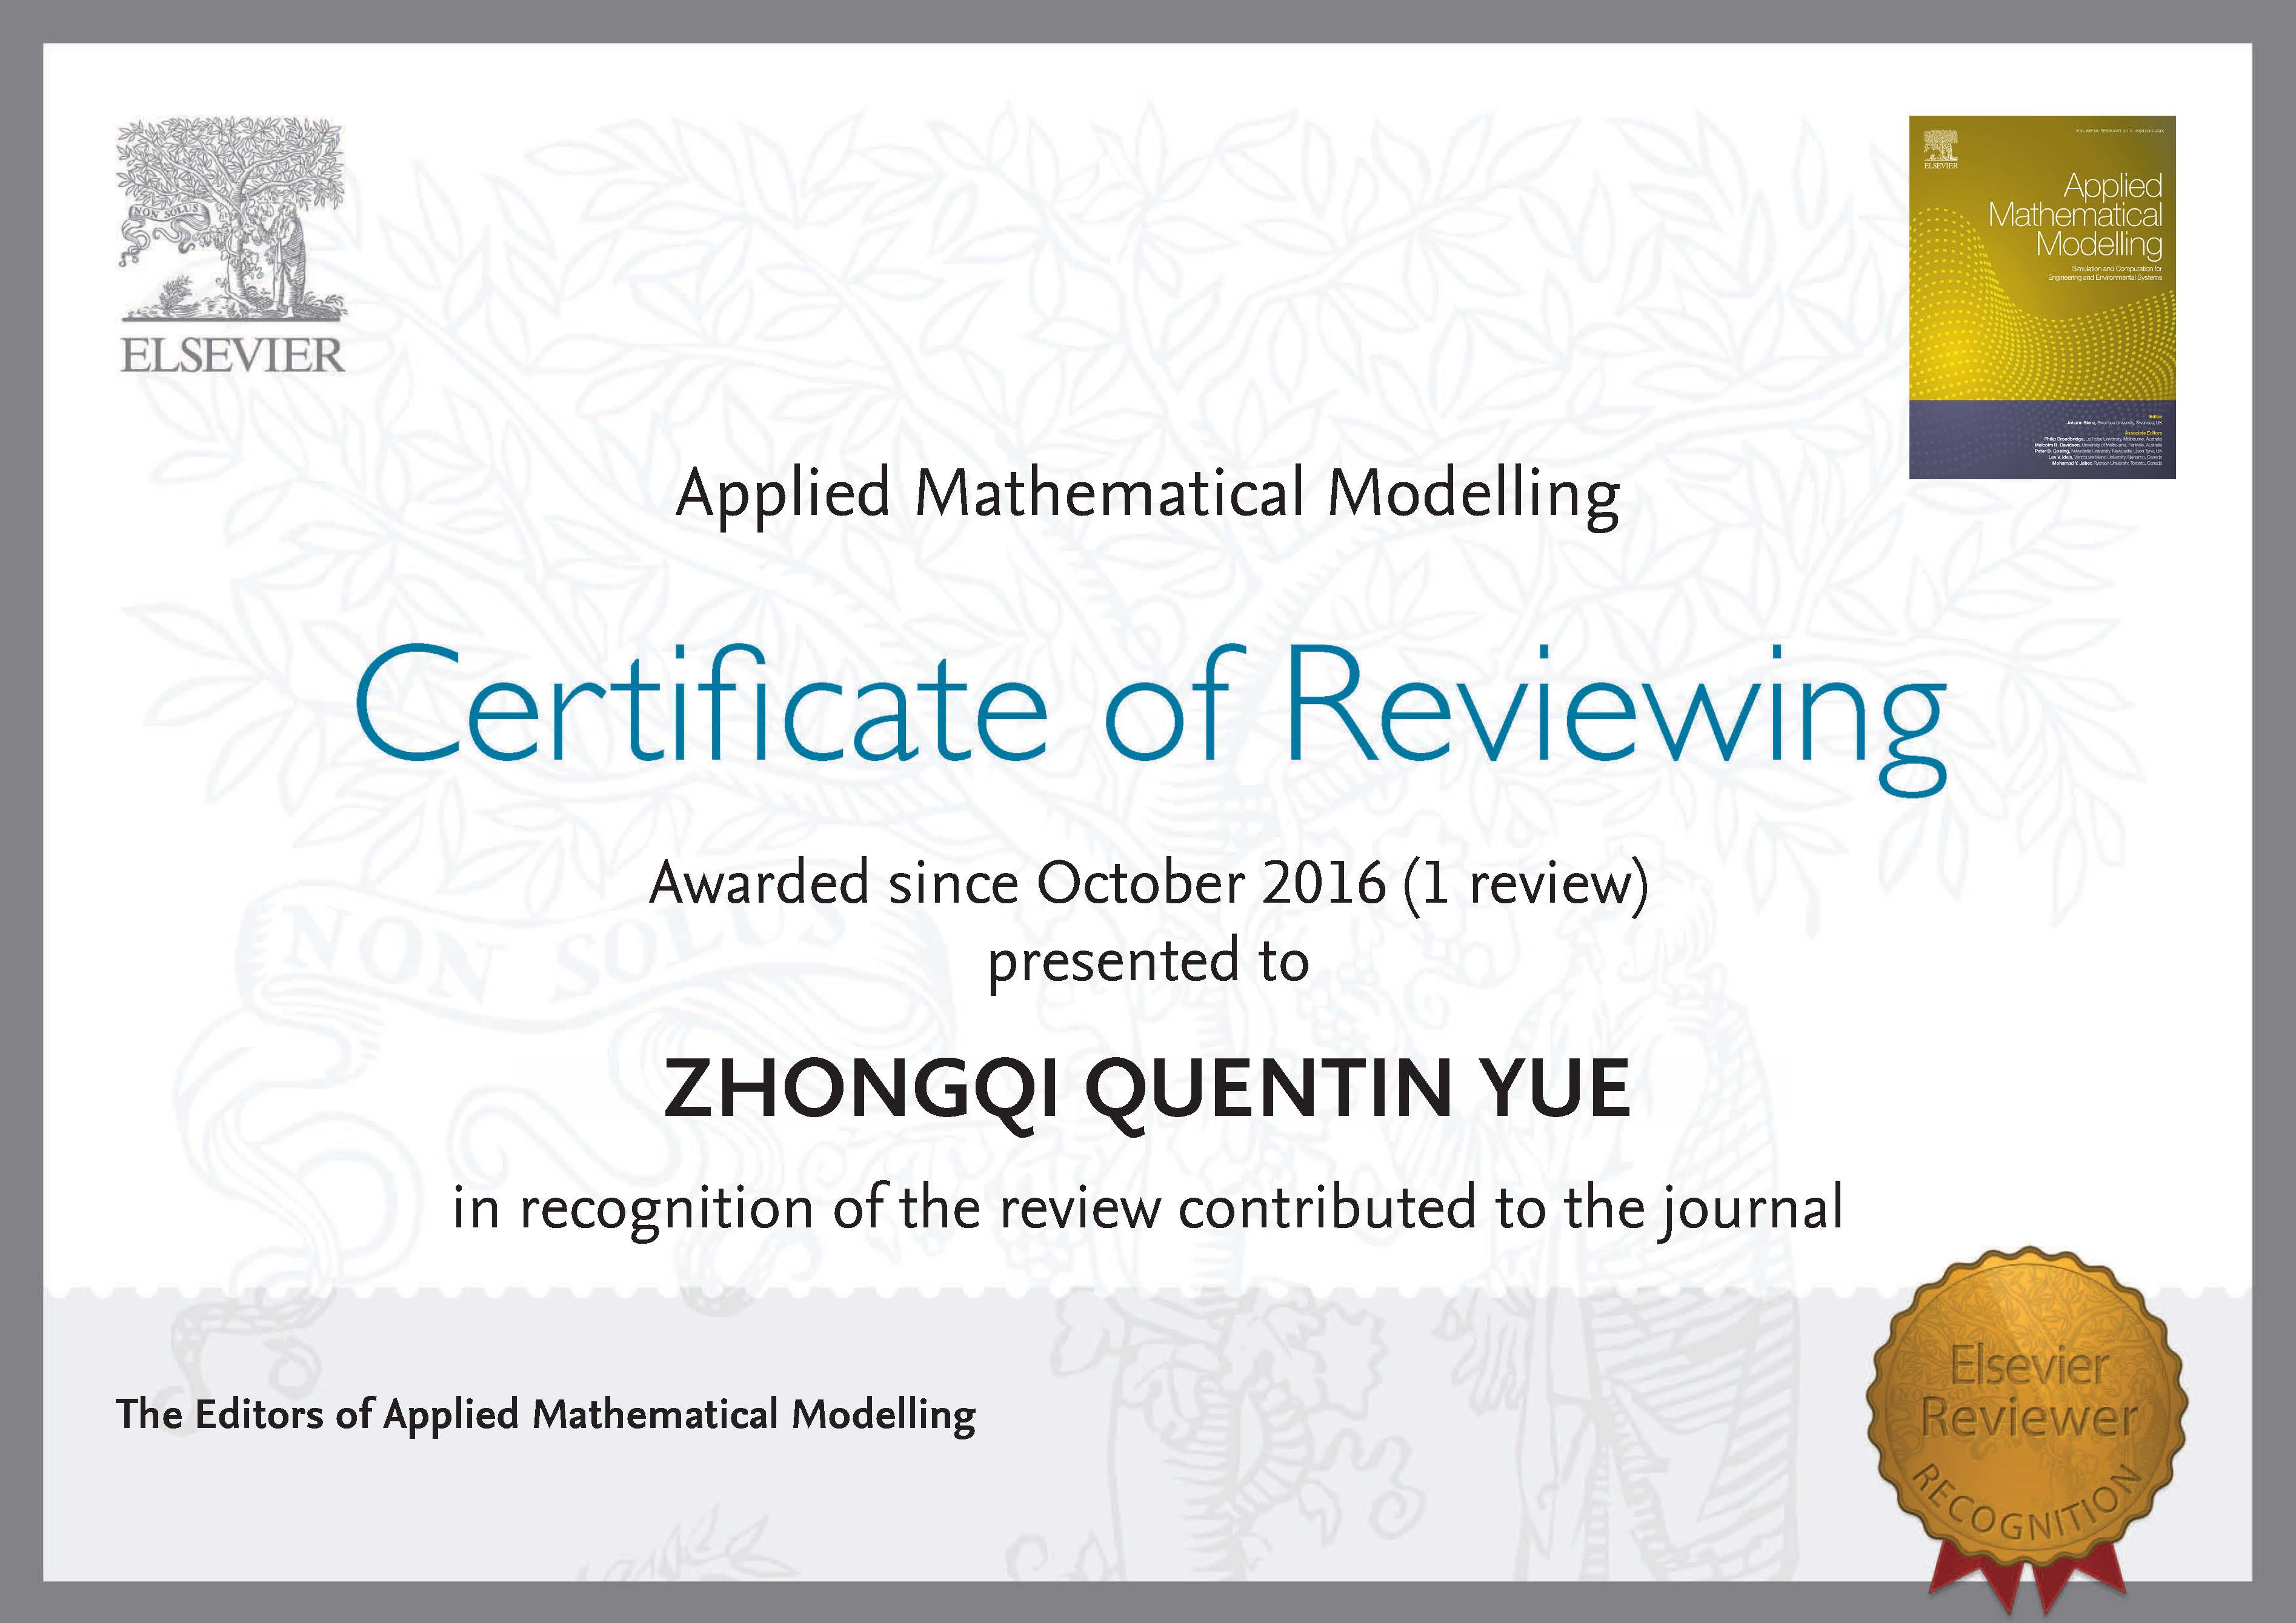 Applied Mathematical Modelling.jpg